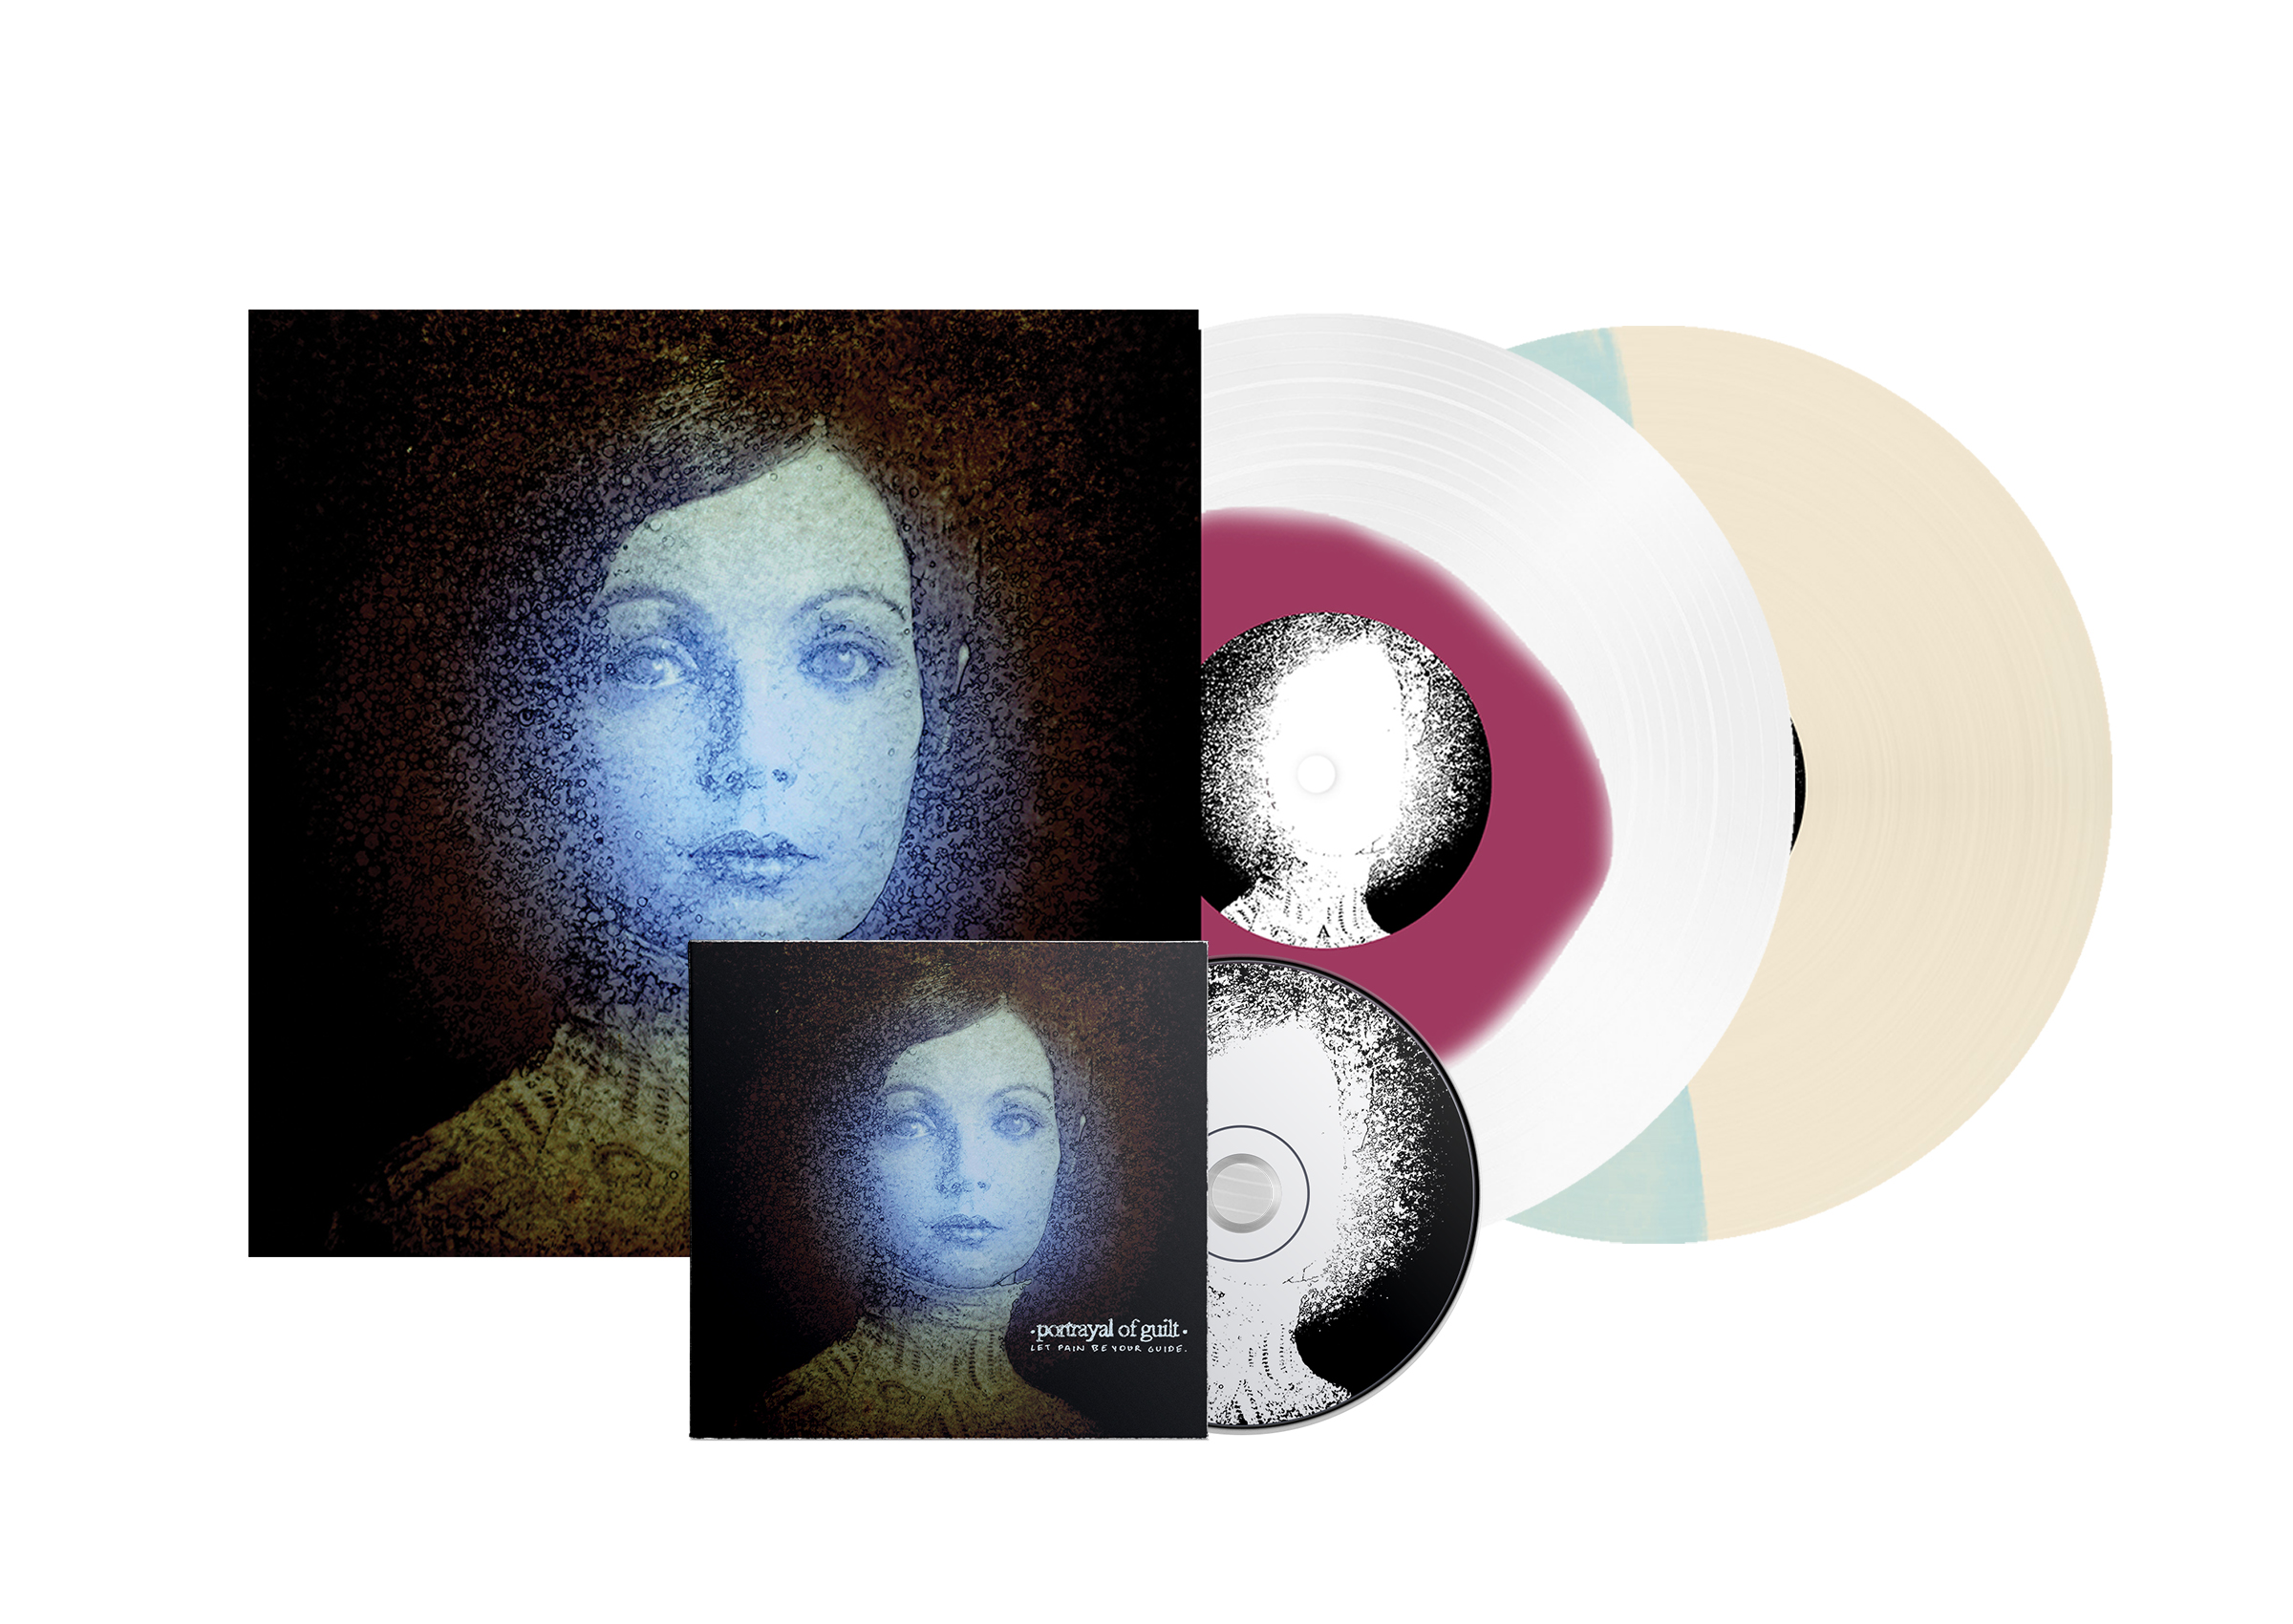 Portrayal of Guilt - 'Let Pain Be Your Guide' All Formats (both vinyl colours and CD)